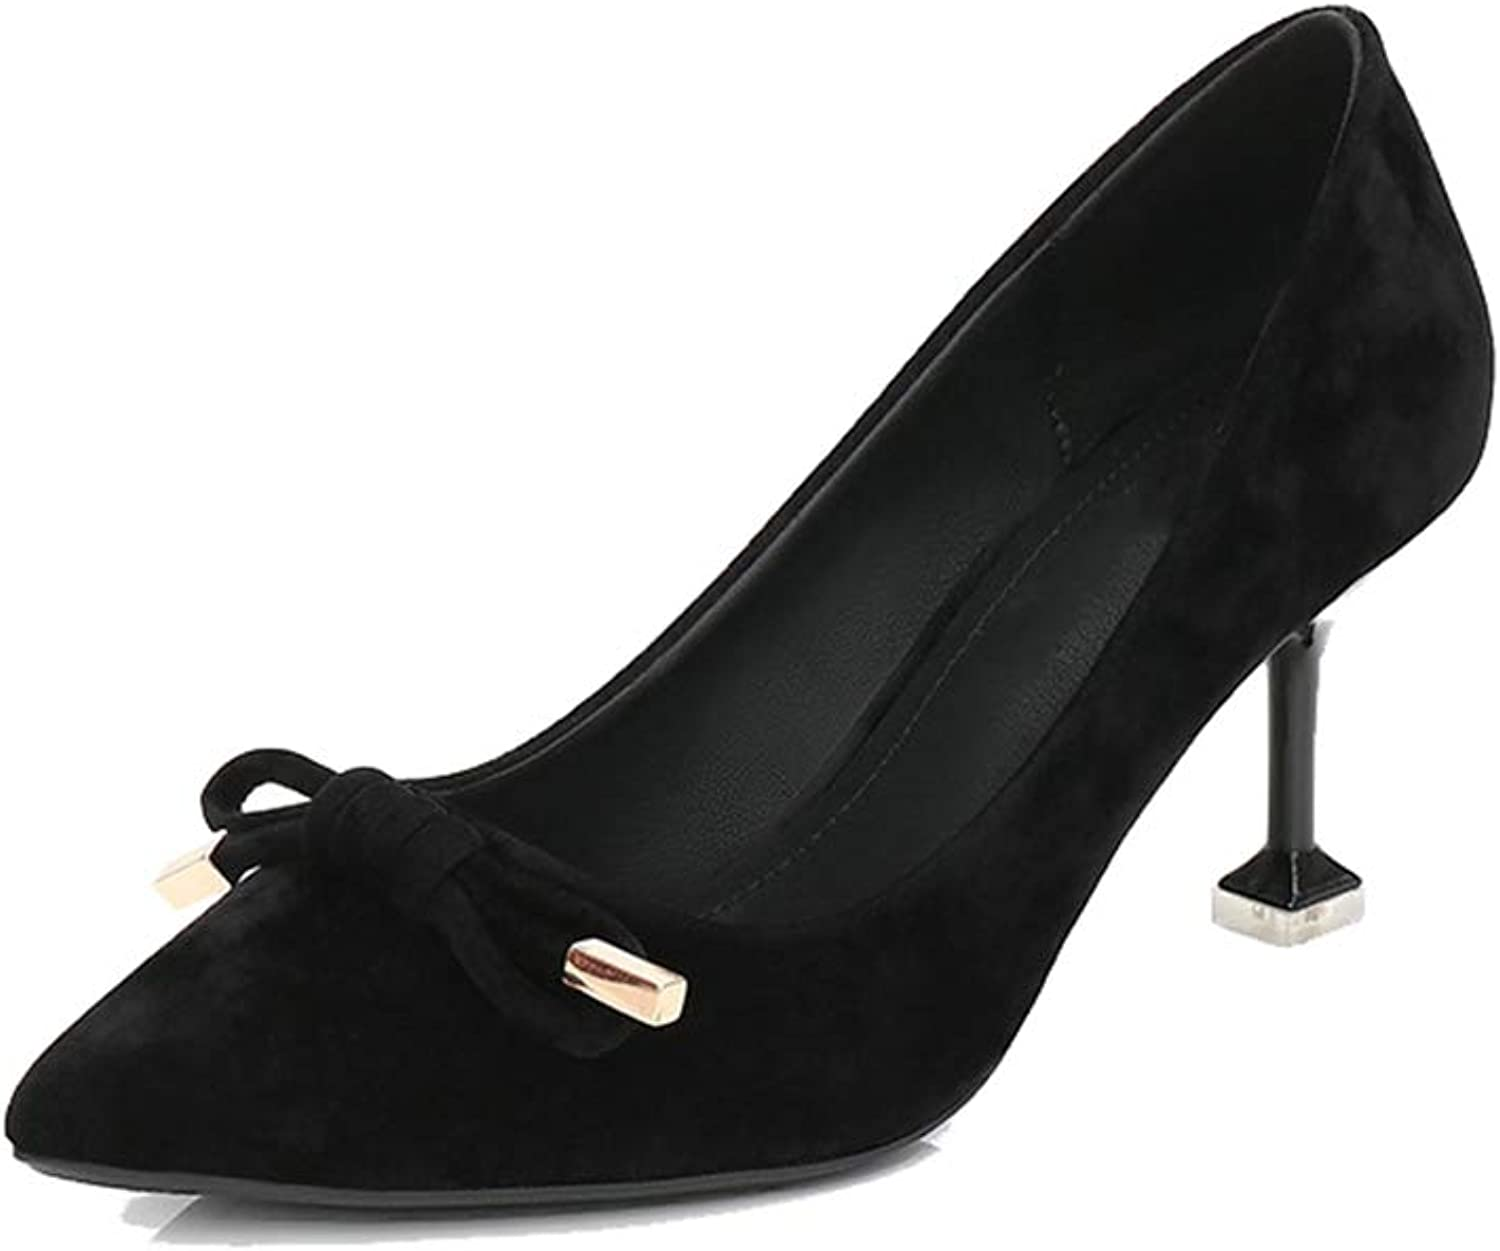 Sam Carle Women's Pumps,Suede Bow-Knot Kitten Heel Comfortable Solid color Office shoes